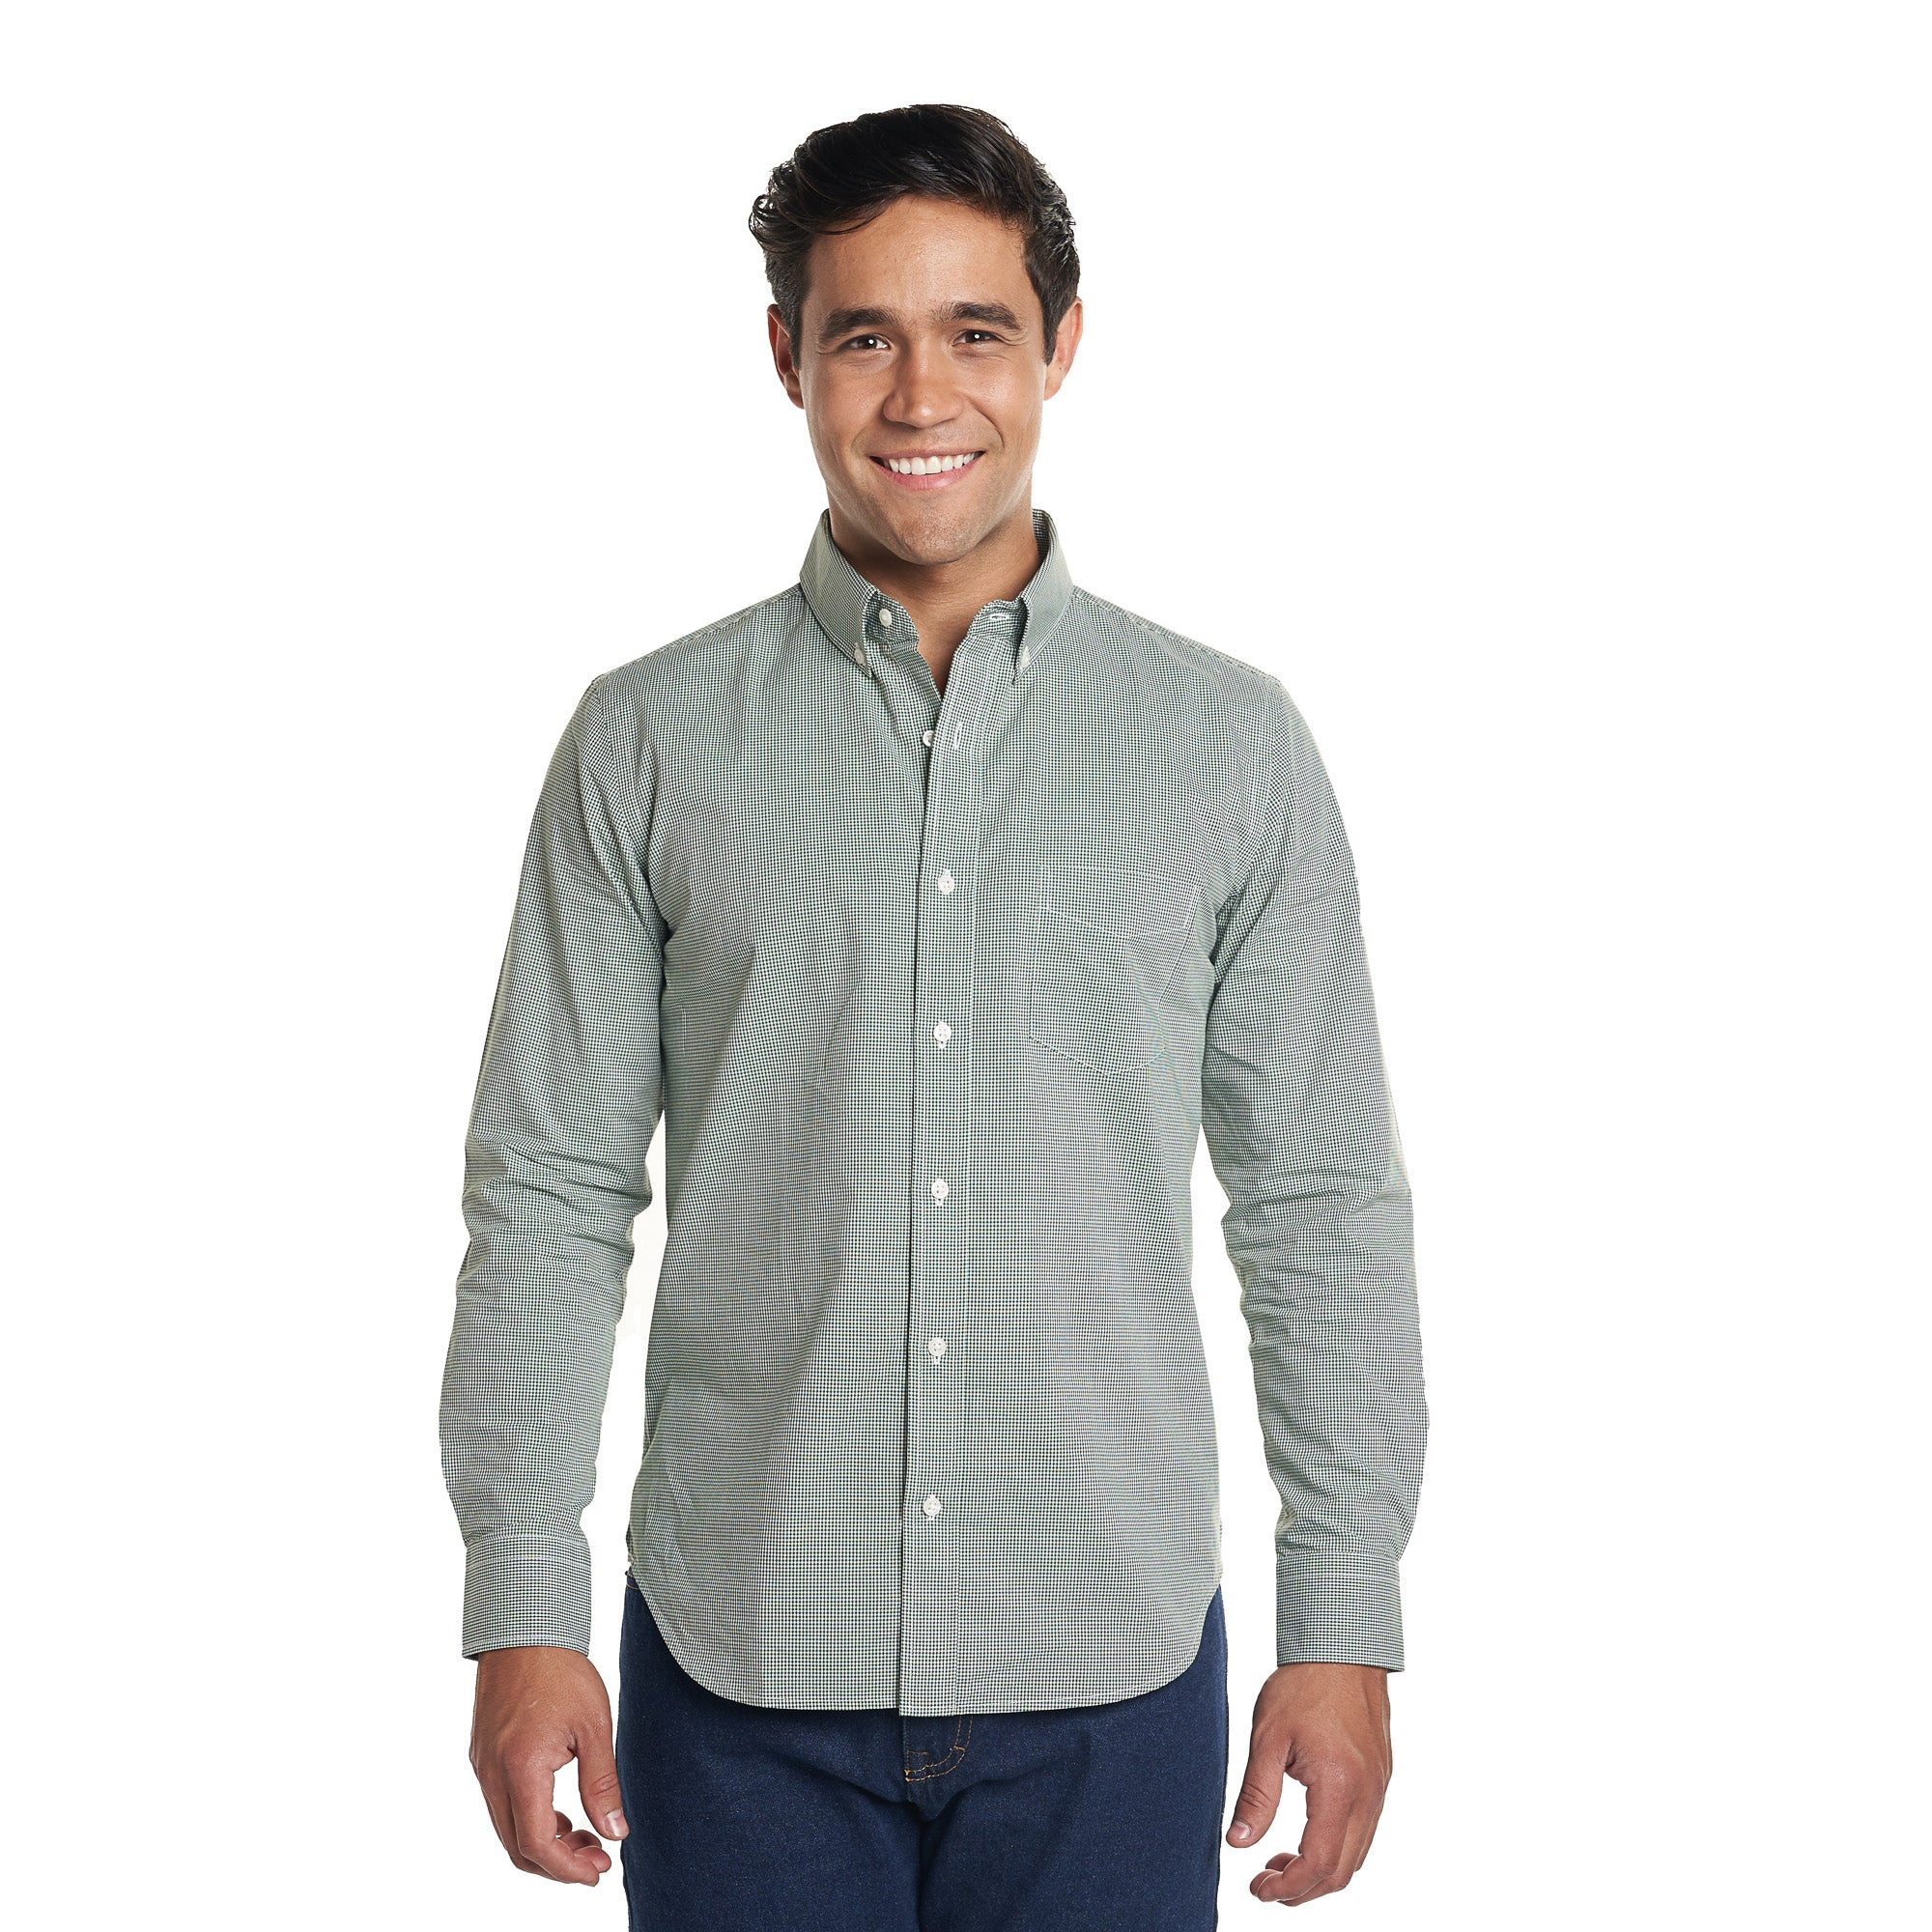 Everyday Shirt - Green Microcheck